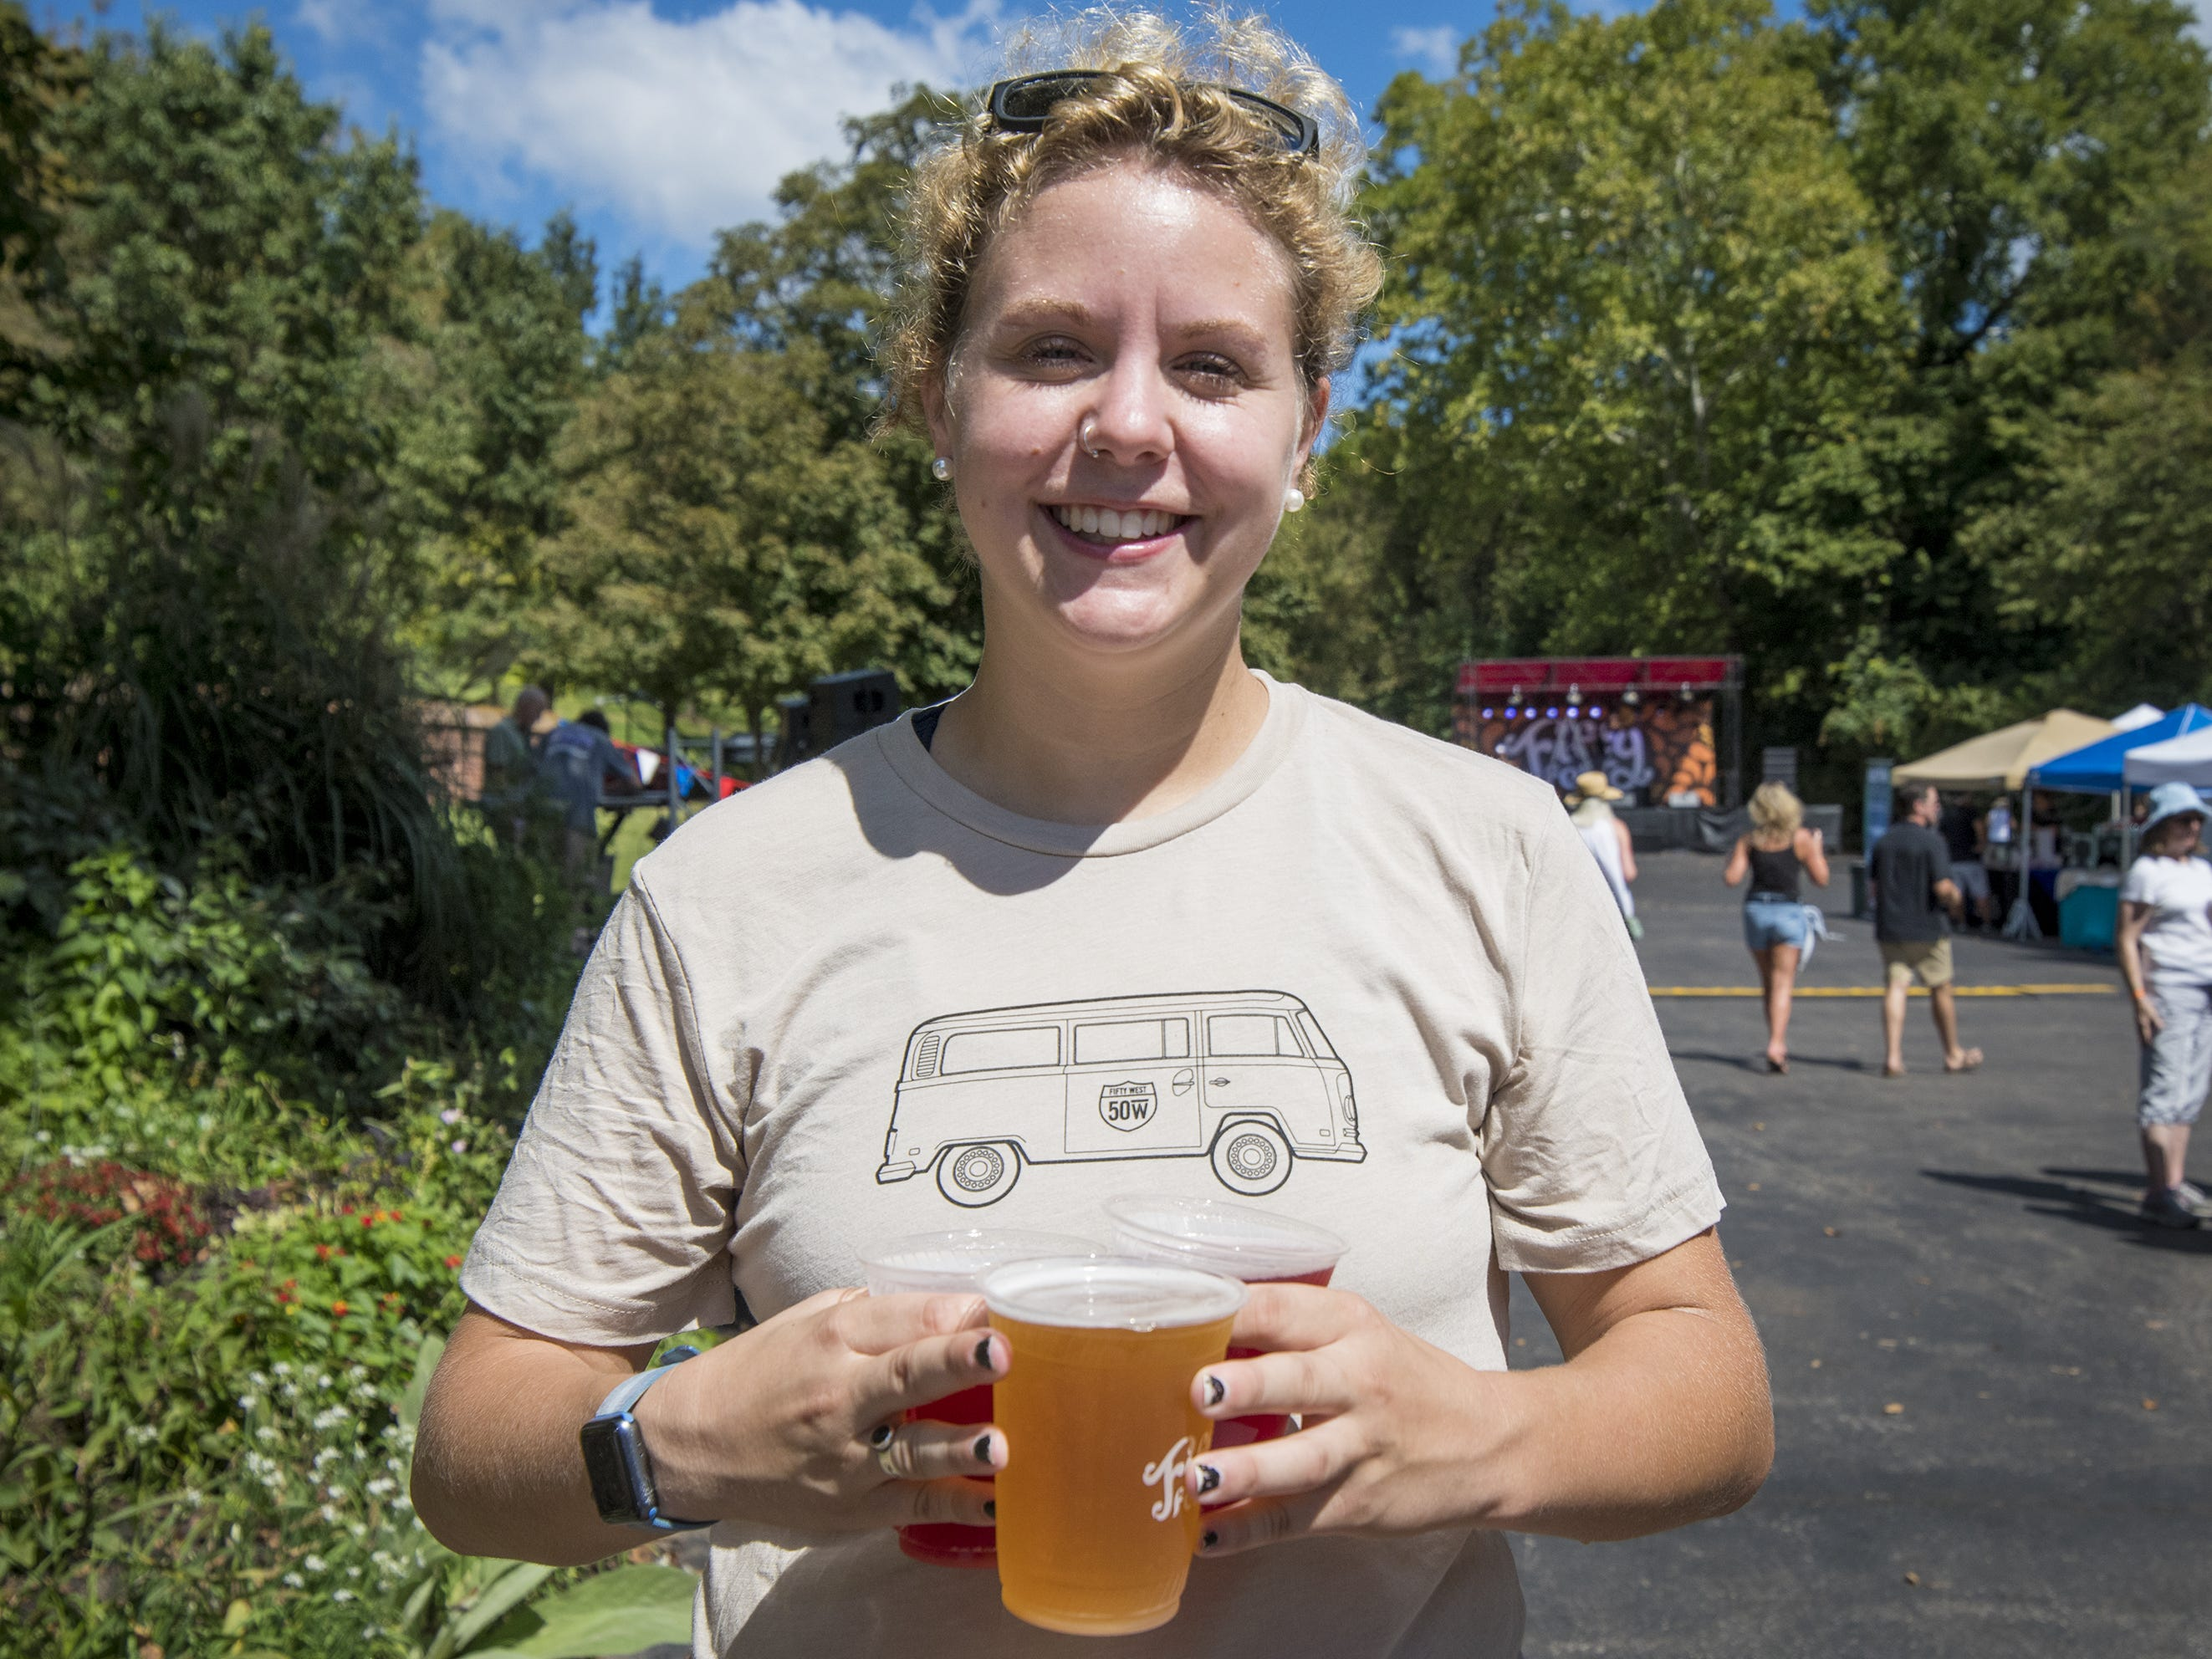 Frank with 50 West grabs some brews during Fifty Fest at 50 West Brewing Saturday, September 15, 2018 in Cincinnati, Ohio. The festival features beers from tons of local breweries.